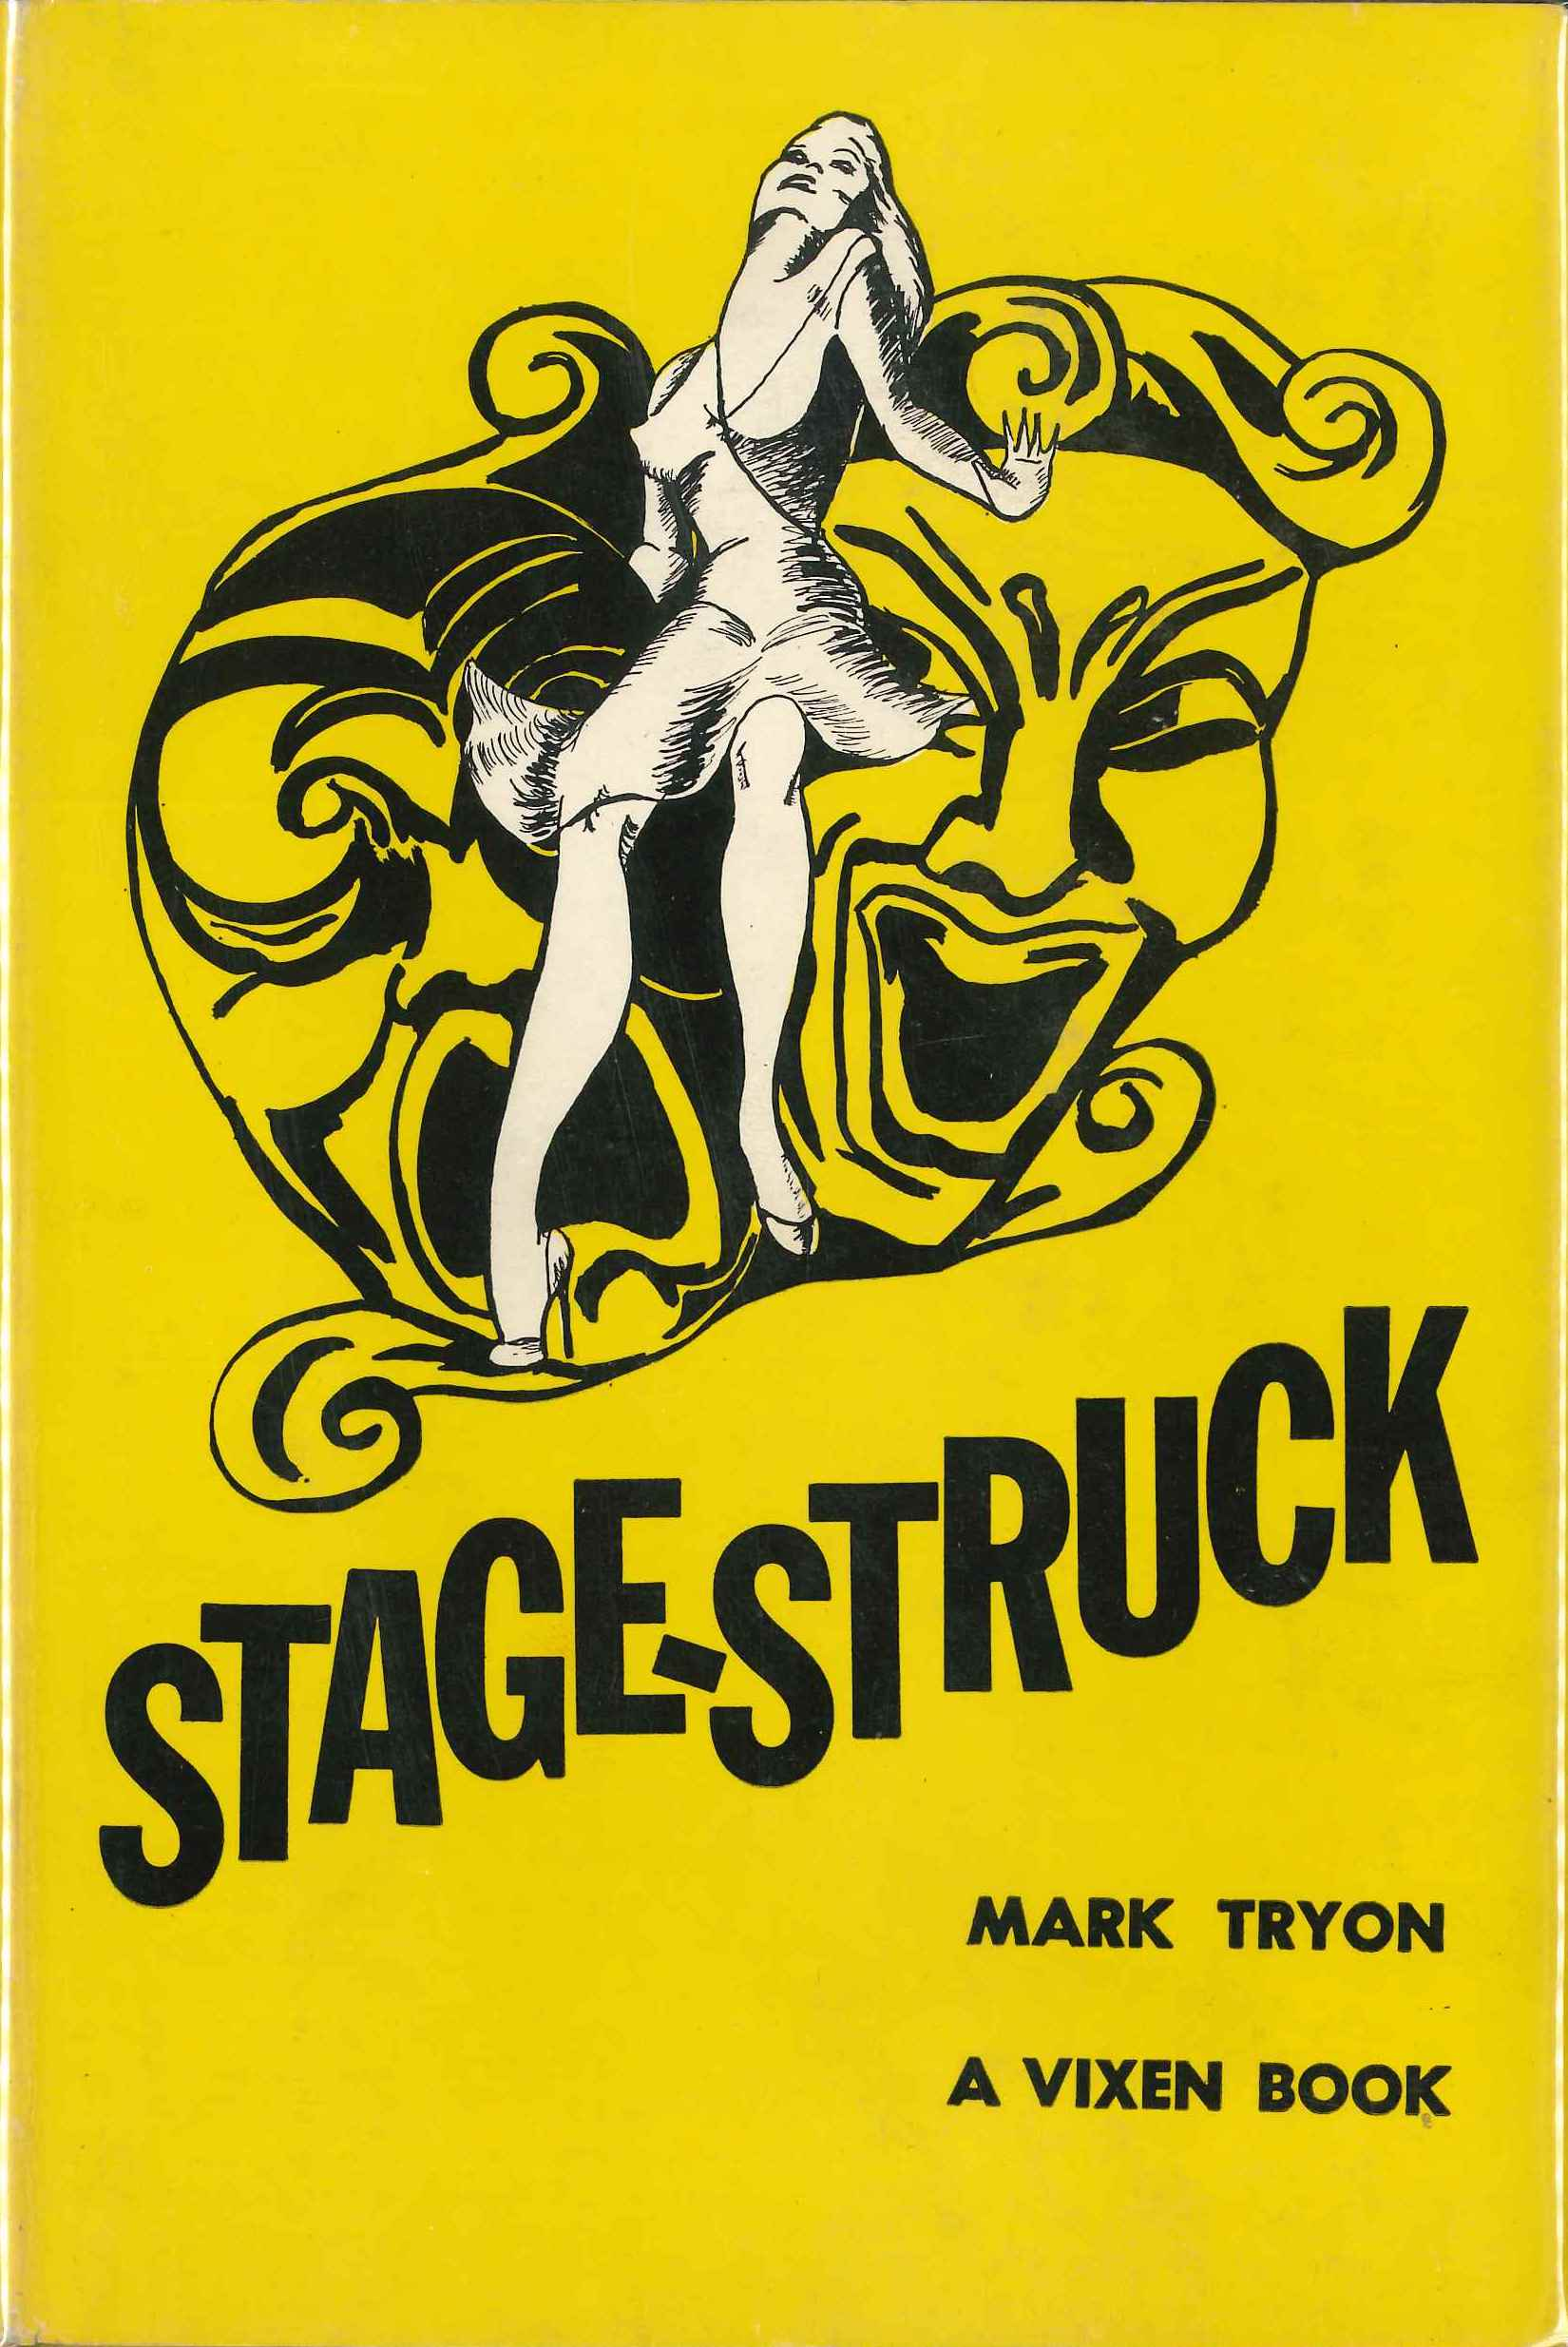 Mark Tryon, Stage-Struck, 1949, dust jacket